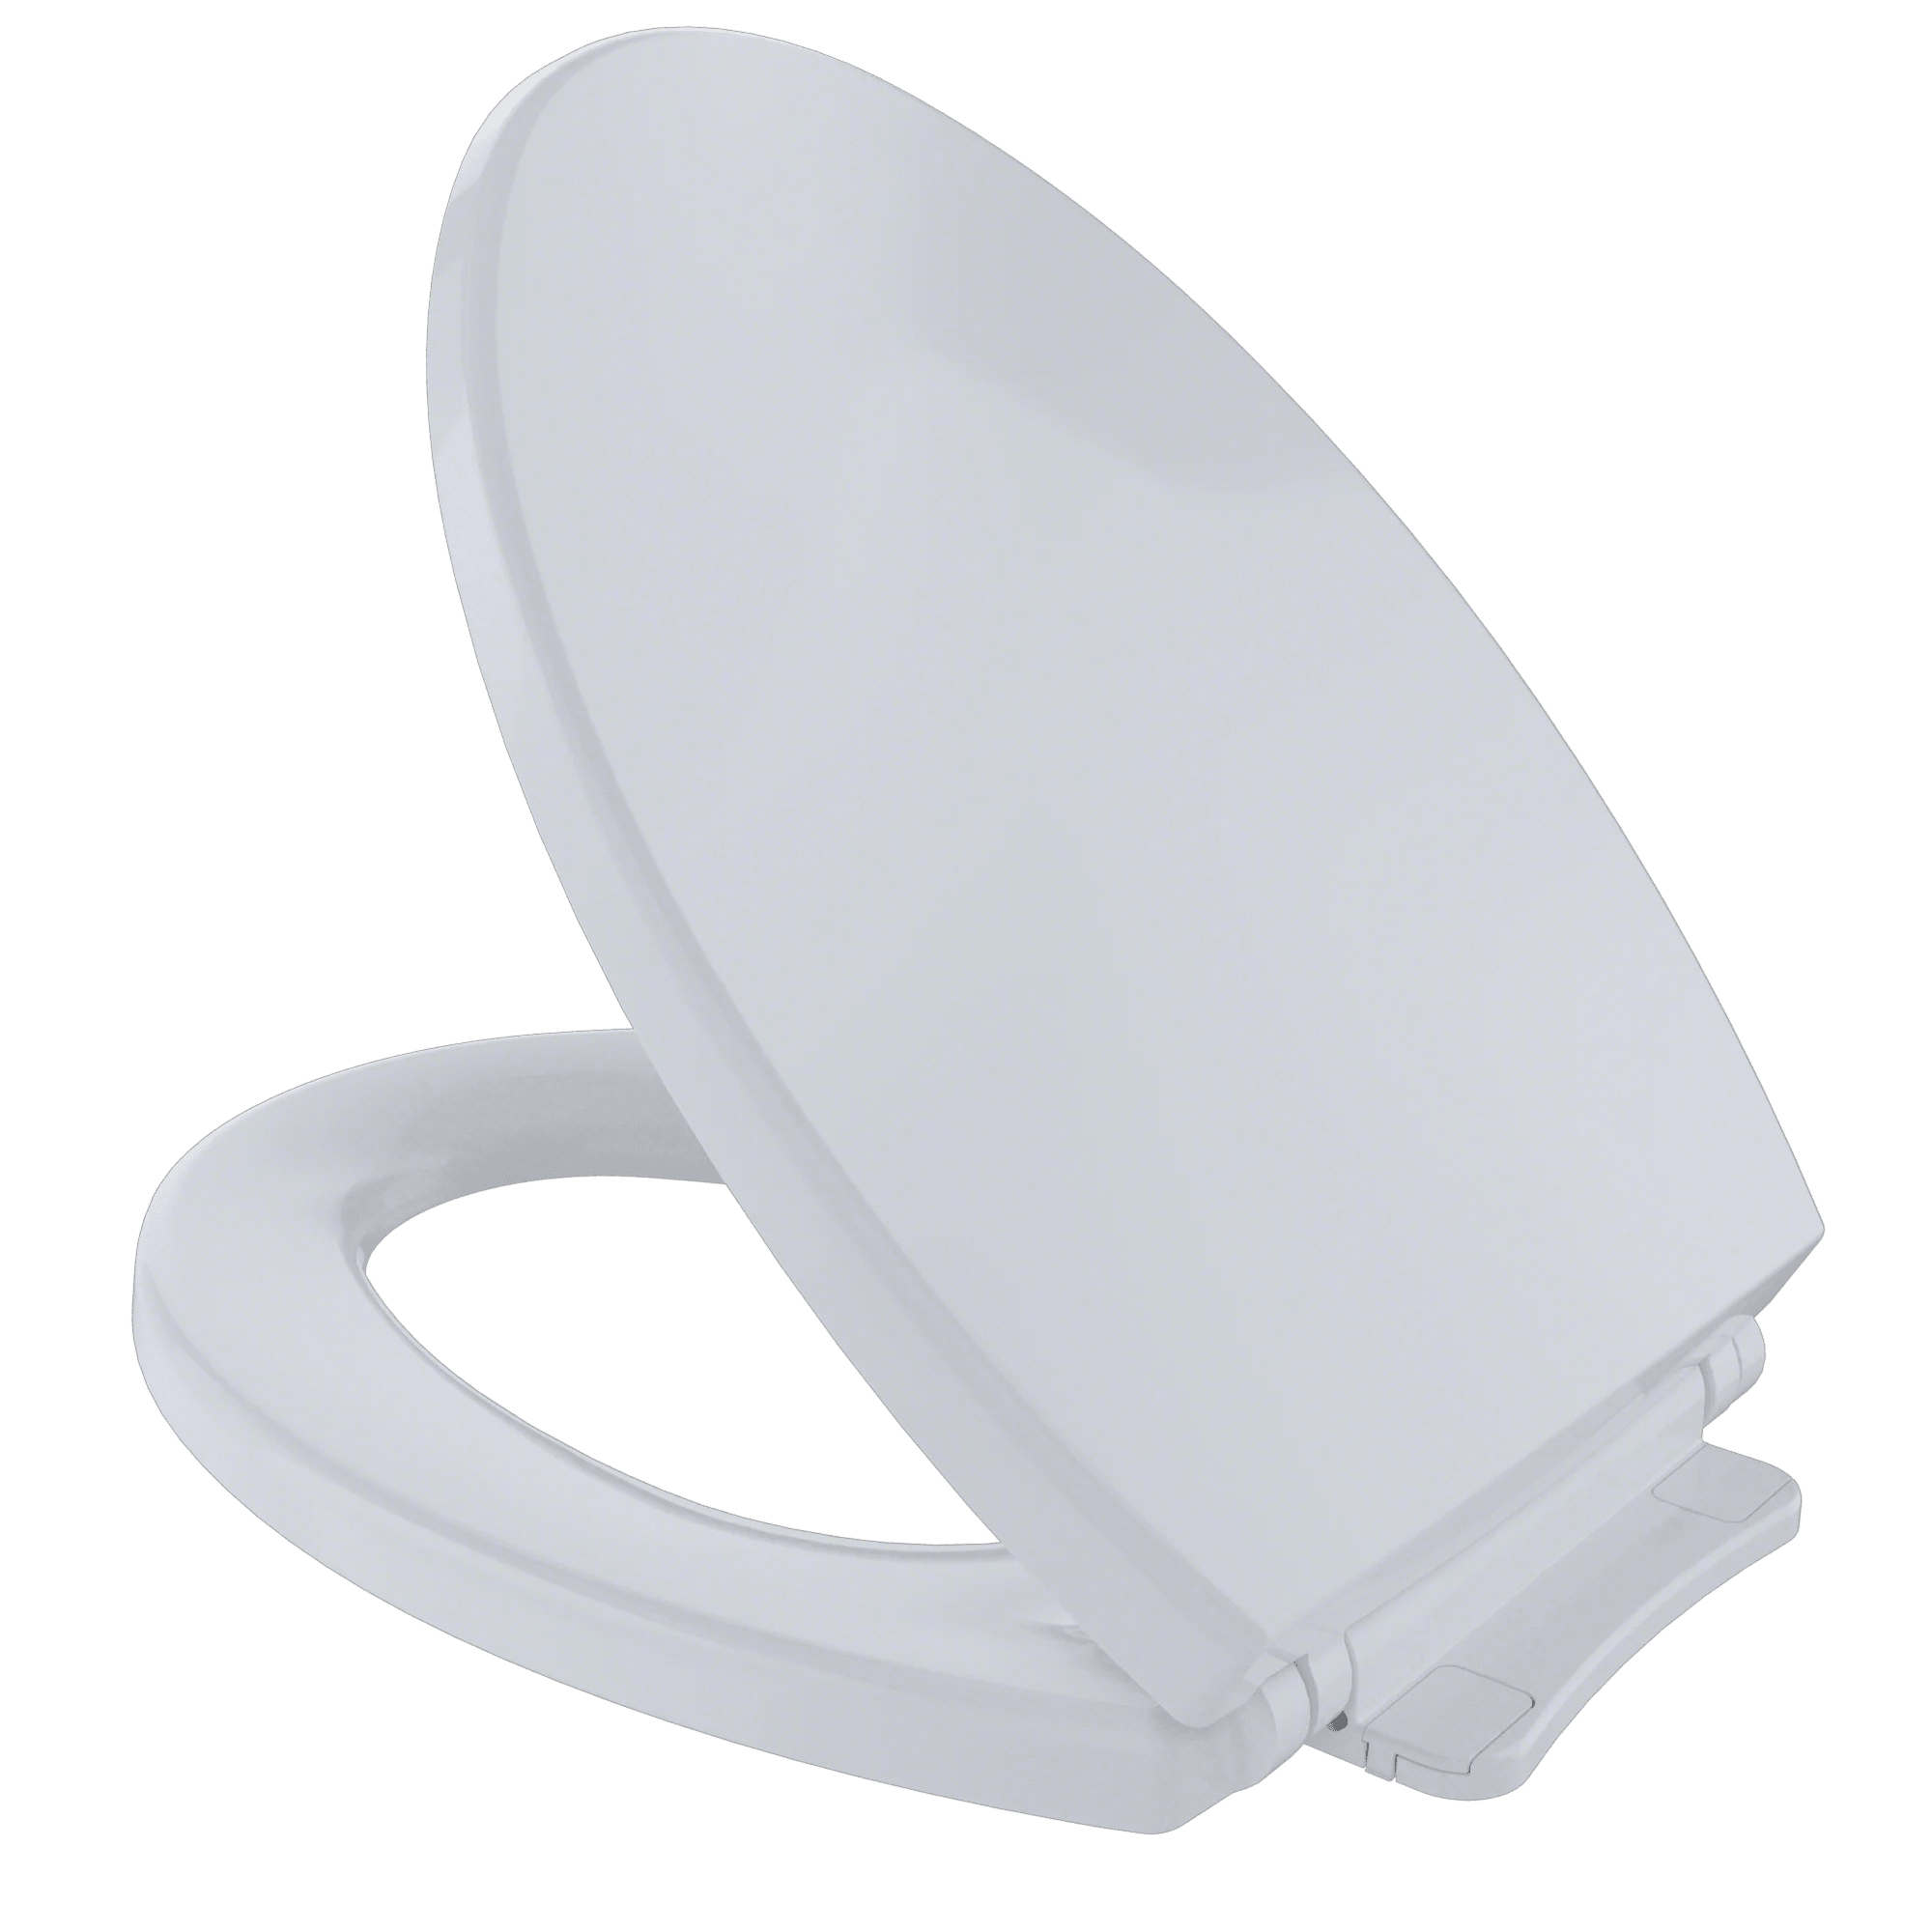 TOTO SoftClose Non Slamming, Slow Close Elongated Toilet Seat and